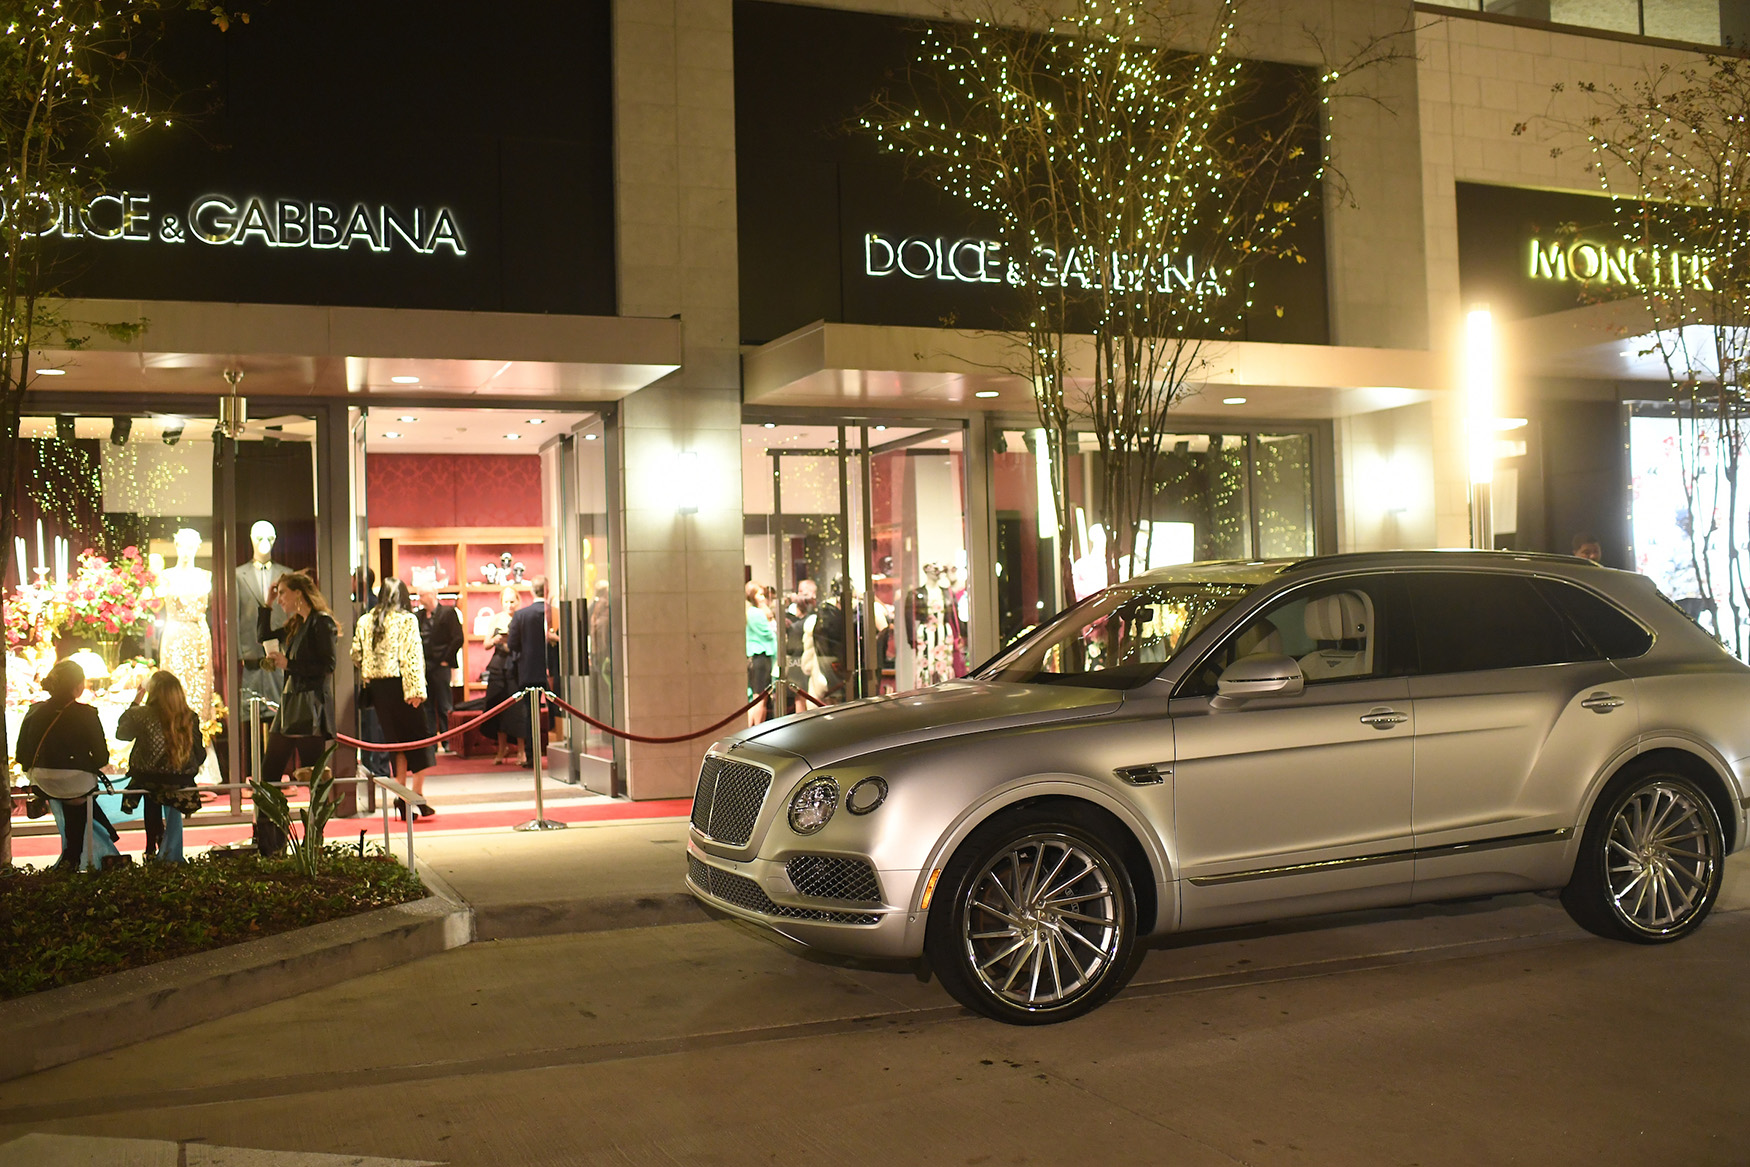 Bentley Houston Helping The Vintage Contessa Give Back While Celebrating 50 in Style.